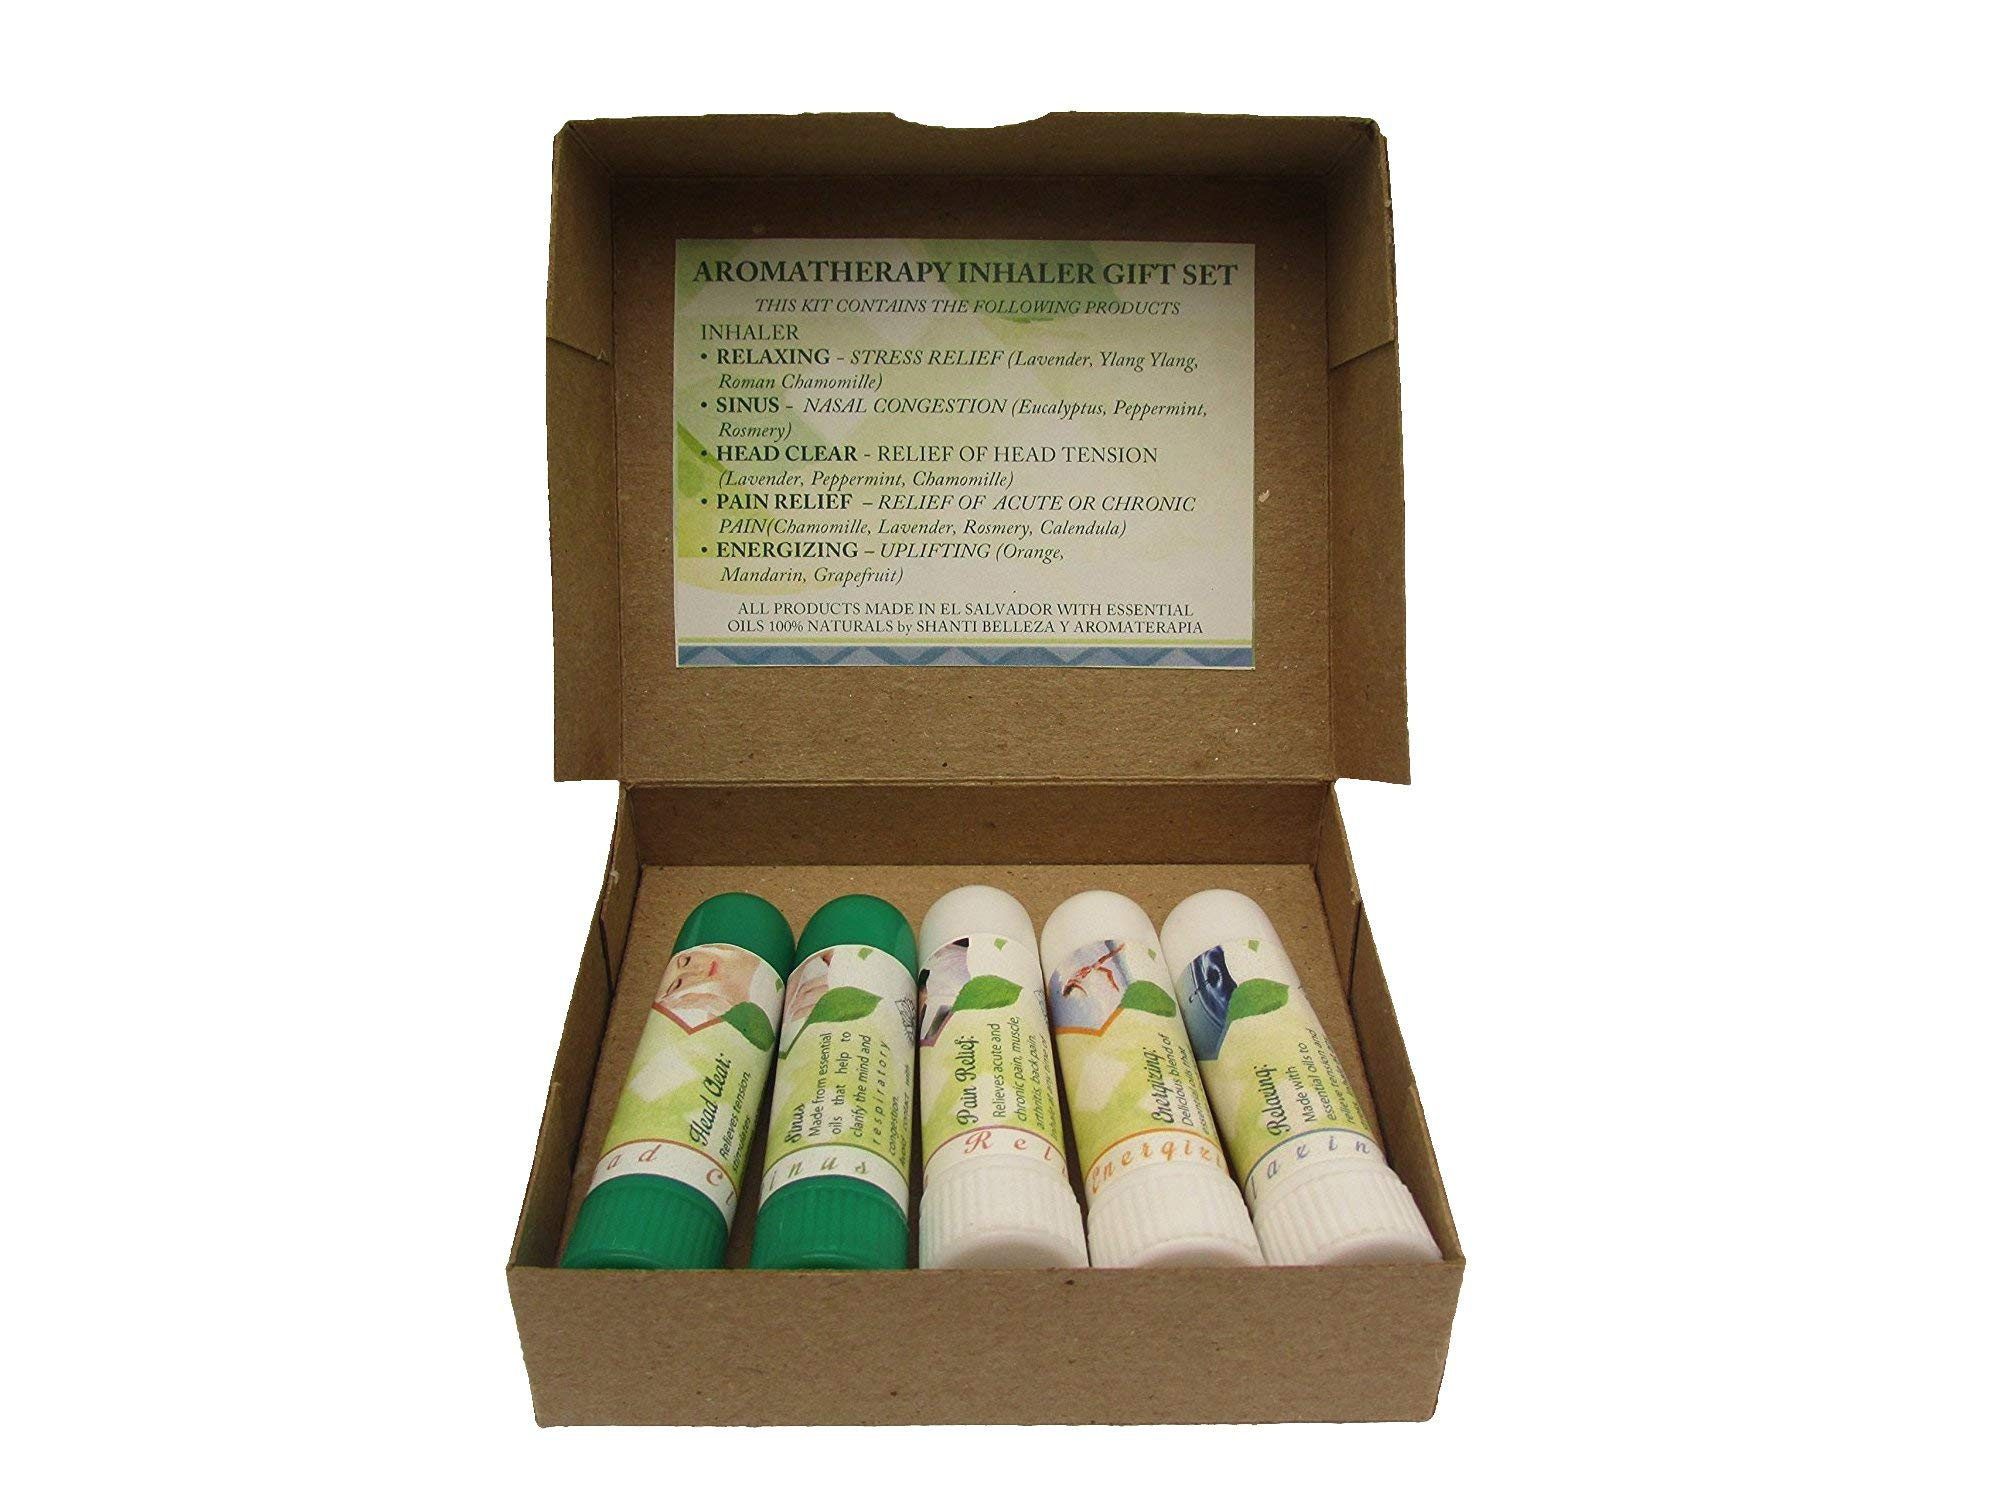 5 Essential oils inhaler gift set (Relaxing, Sinus, Energizing, Head clear, Pain relief).